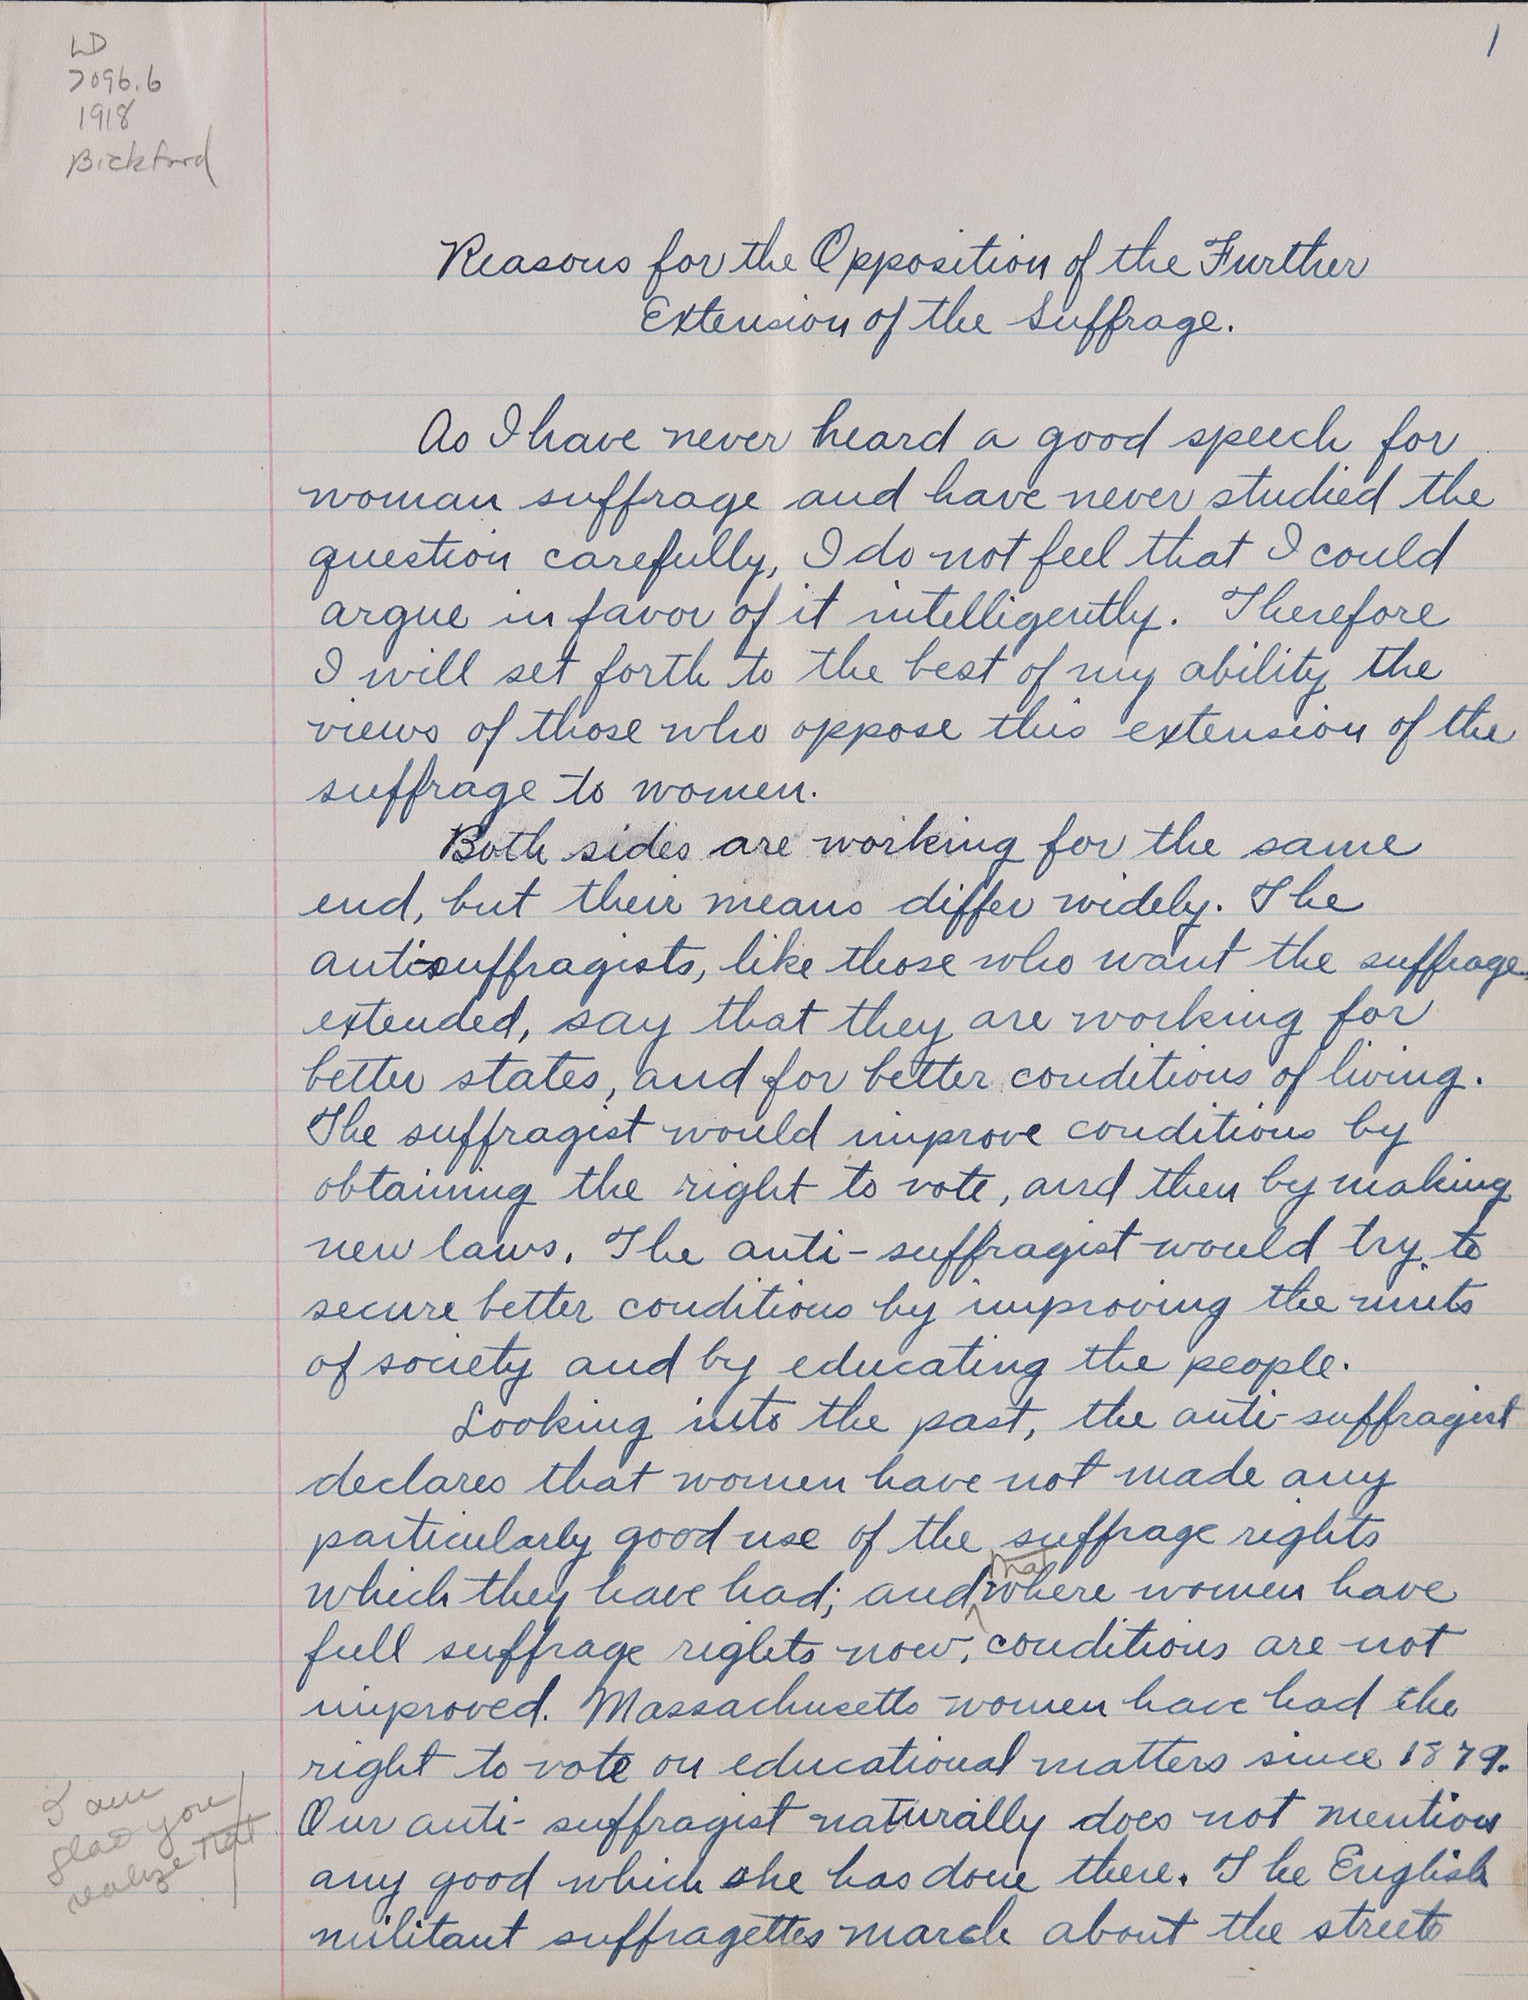 Jeannette Bickford, Class of 1918, Anti-Suffrage essay, November 13, 1914